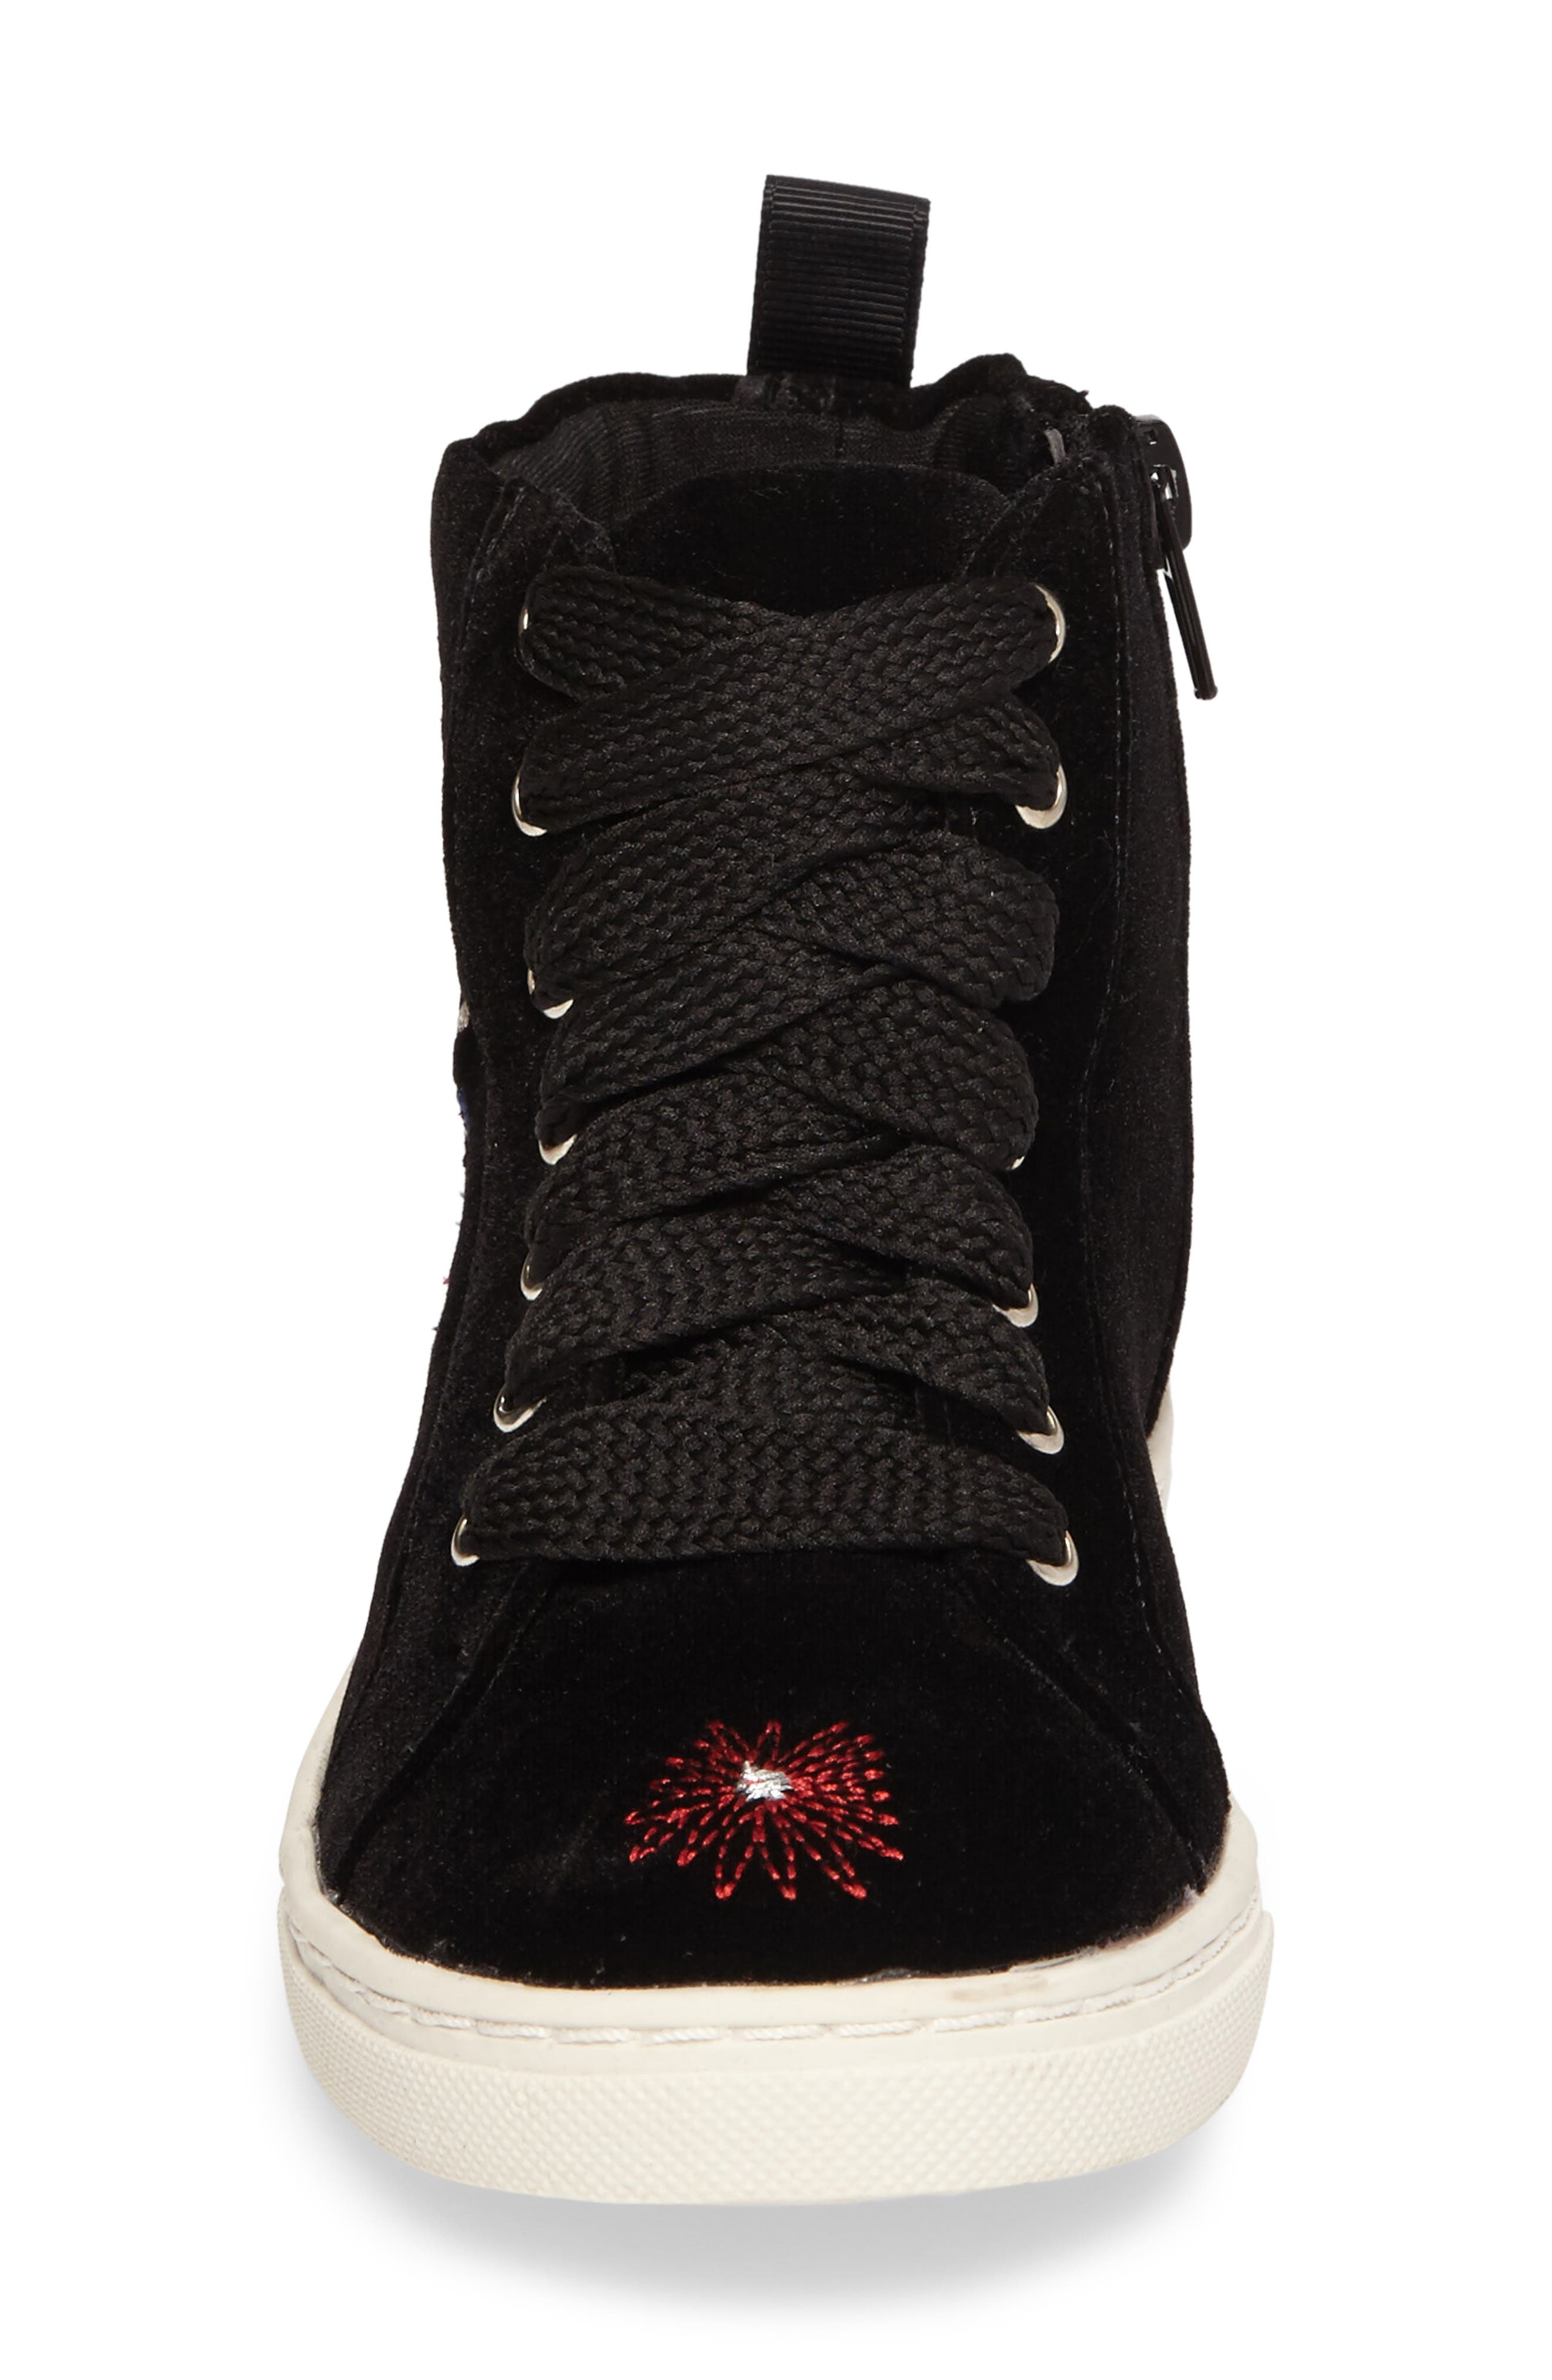 Zowen Embroidered High Top Sneaker,                             Alternate thumbnail 4, color,                             Black Multi Floral